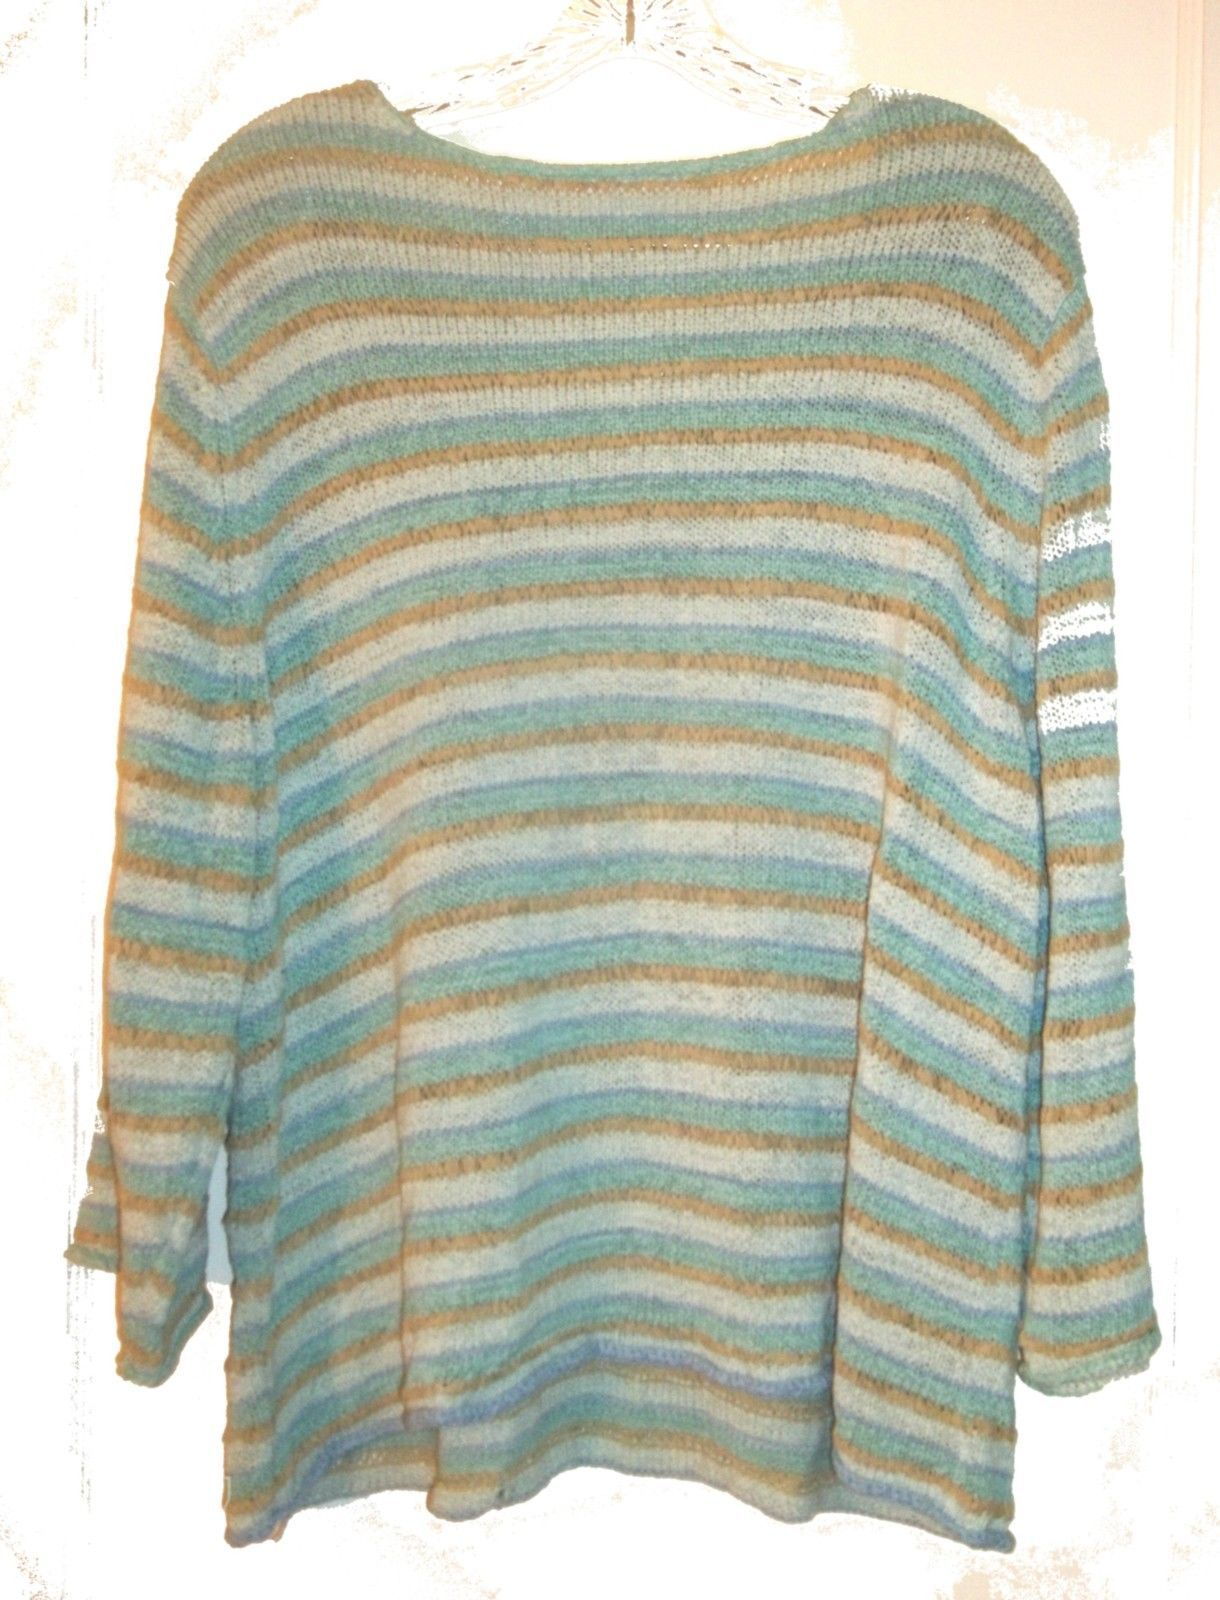 Size XL - Plus Size 3X ~ Villager Long Sleeve Sweaters, some with Beaded Accents image 10